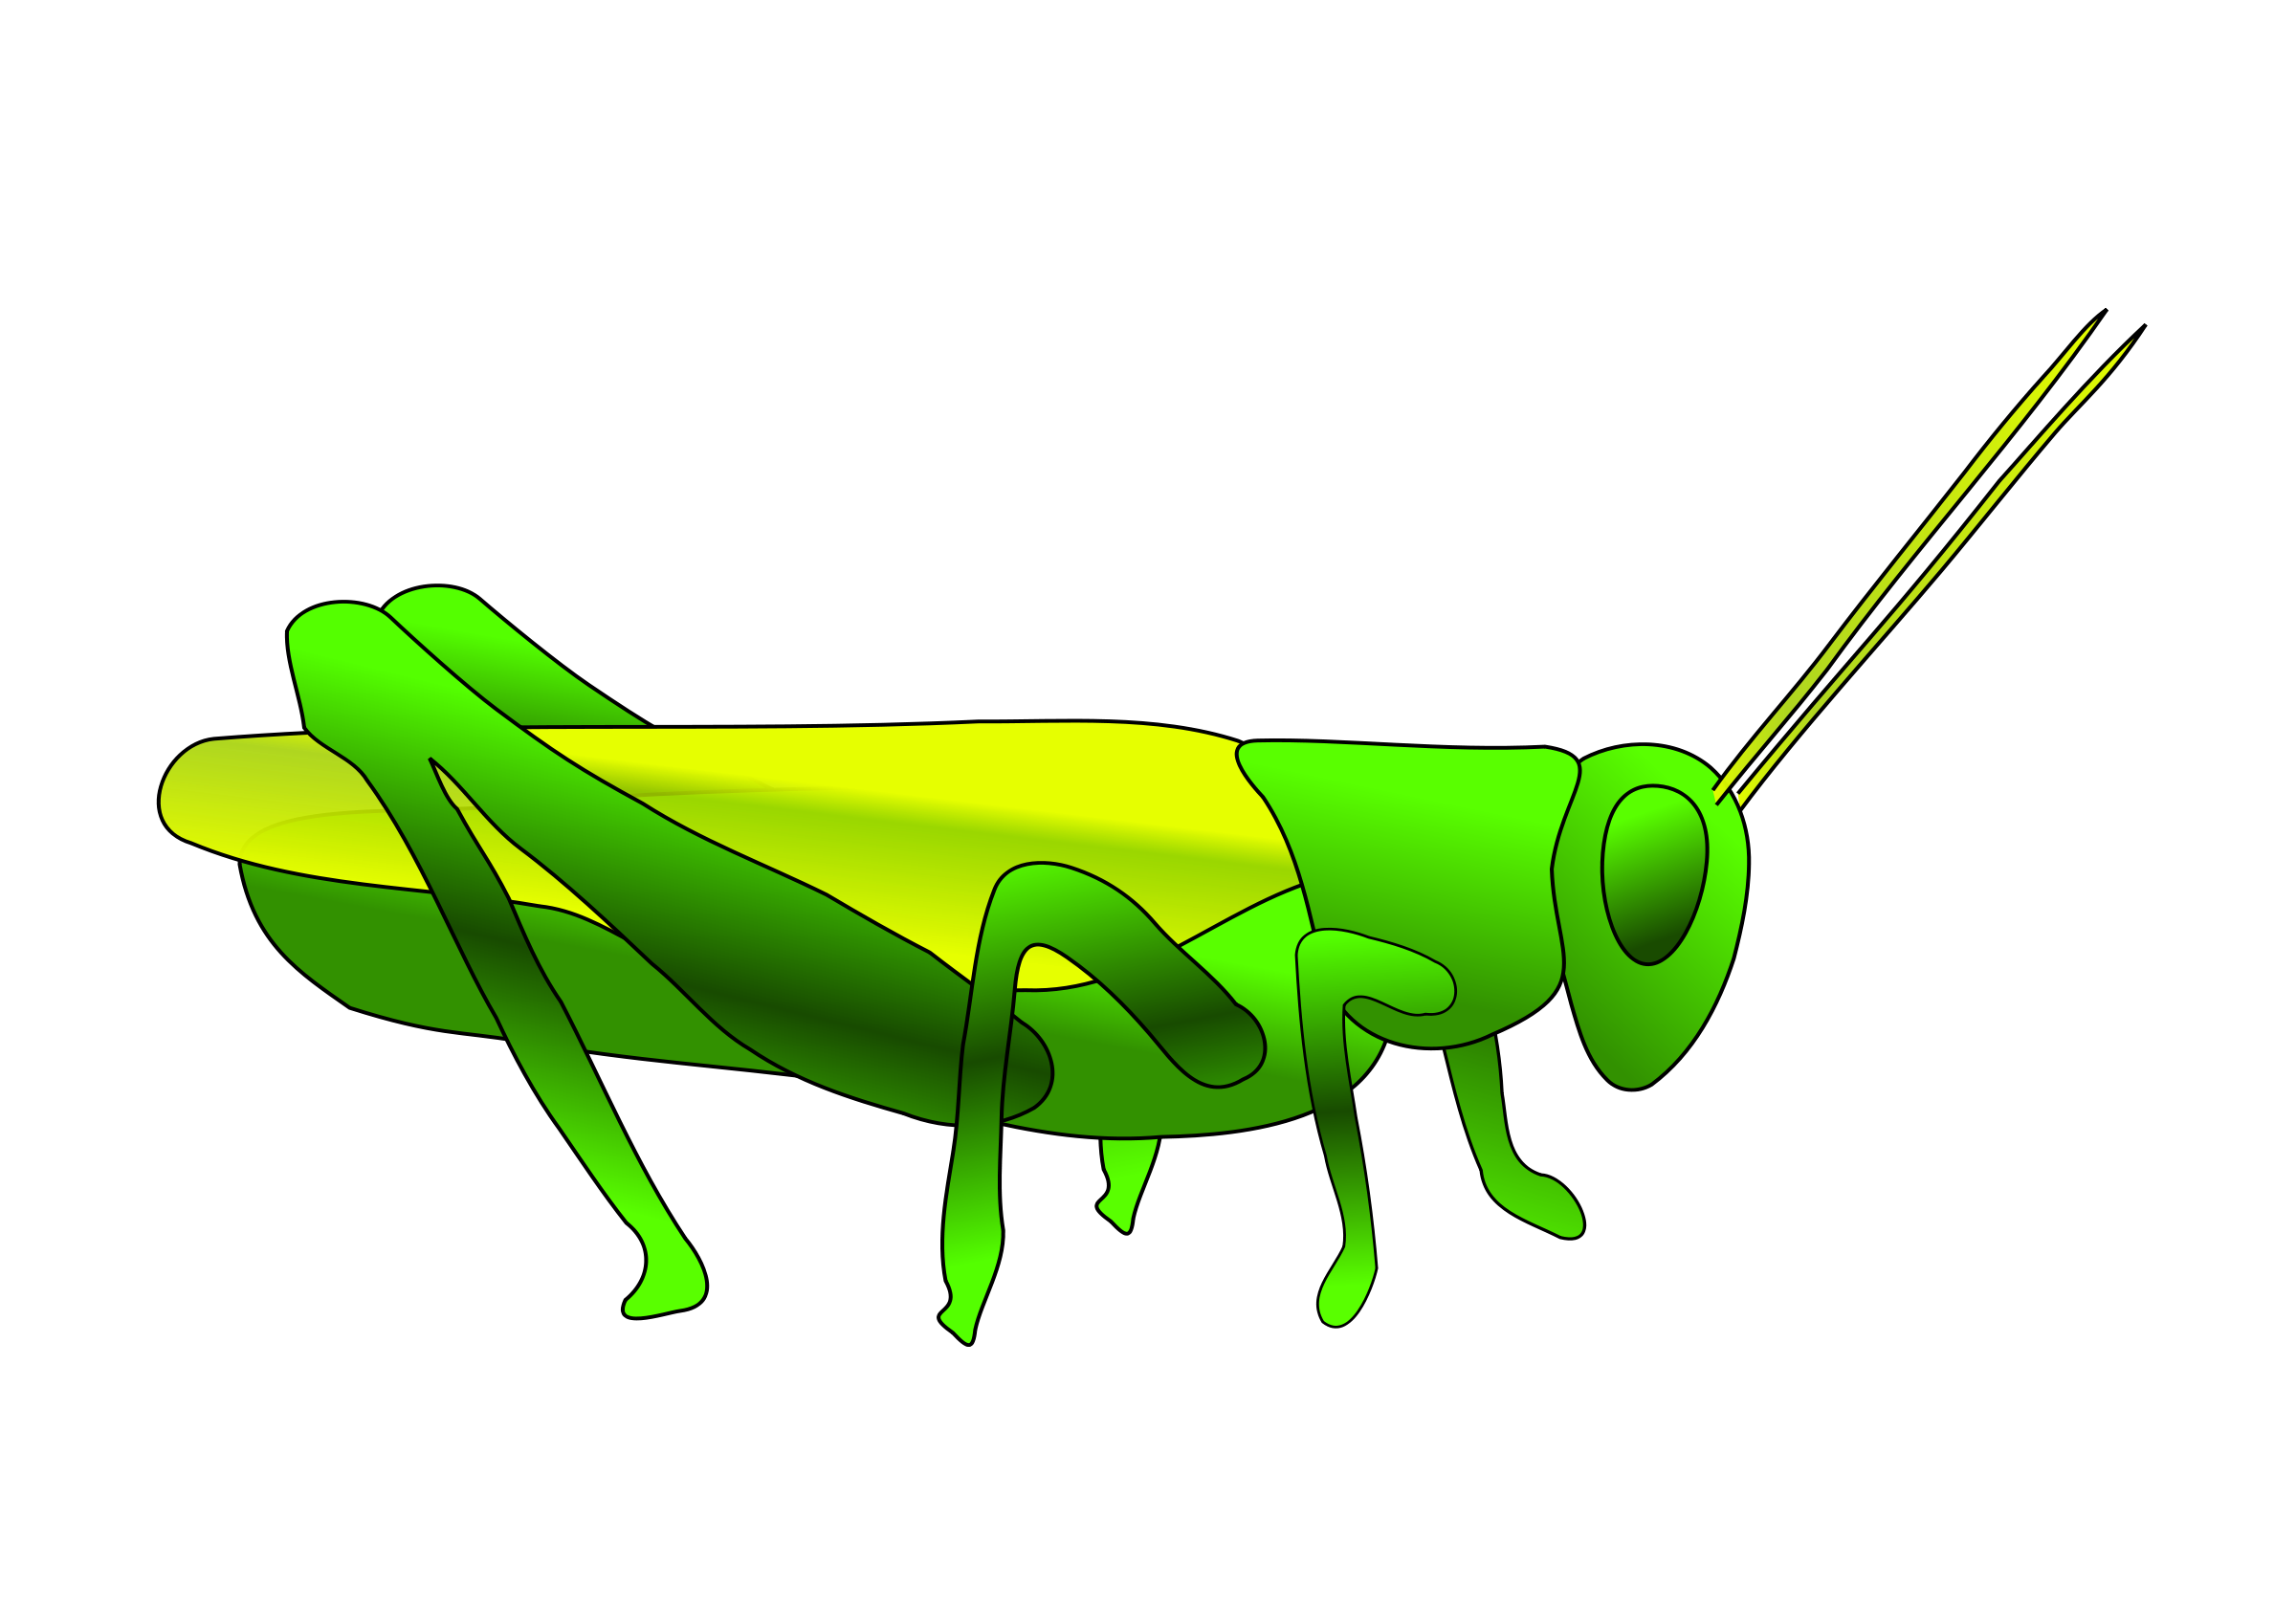 jpg library download Png images free download. Grasshopper clipart transparent